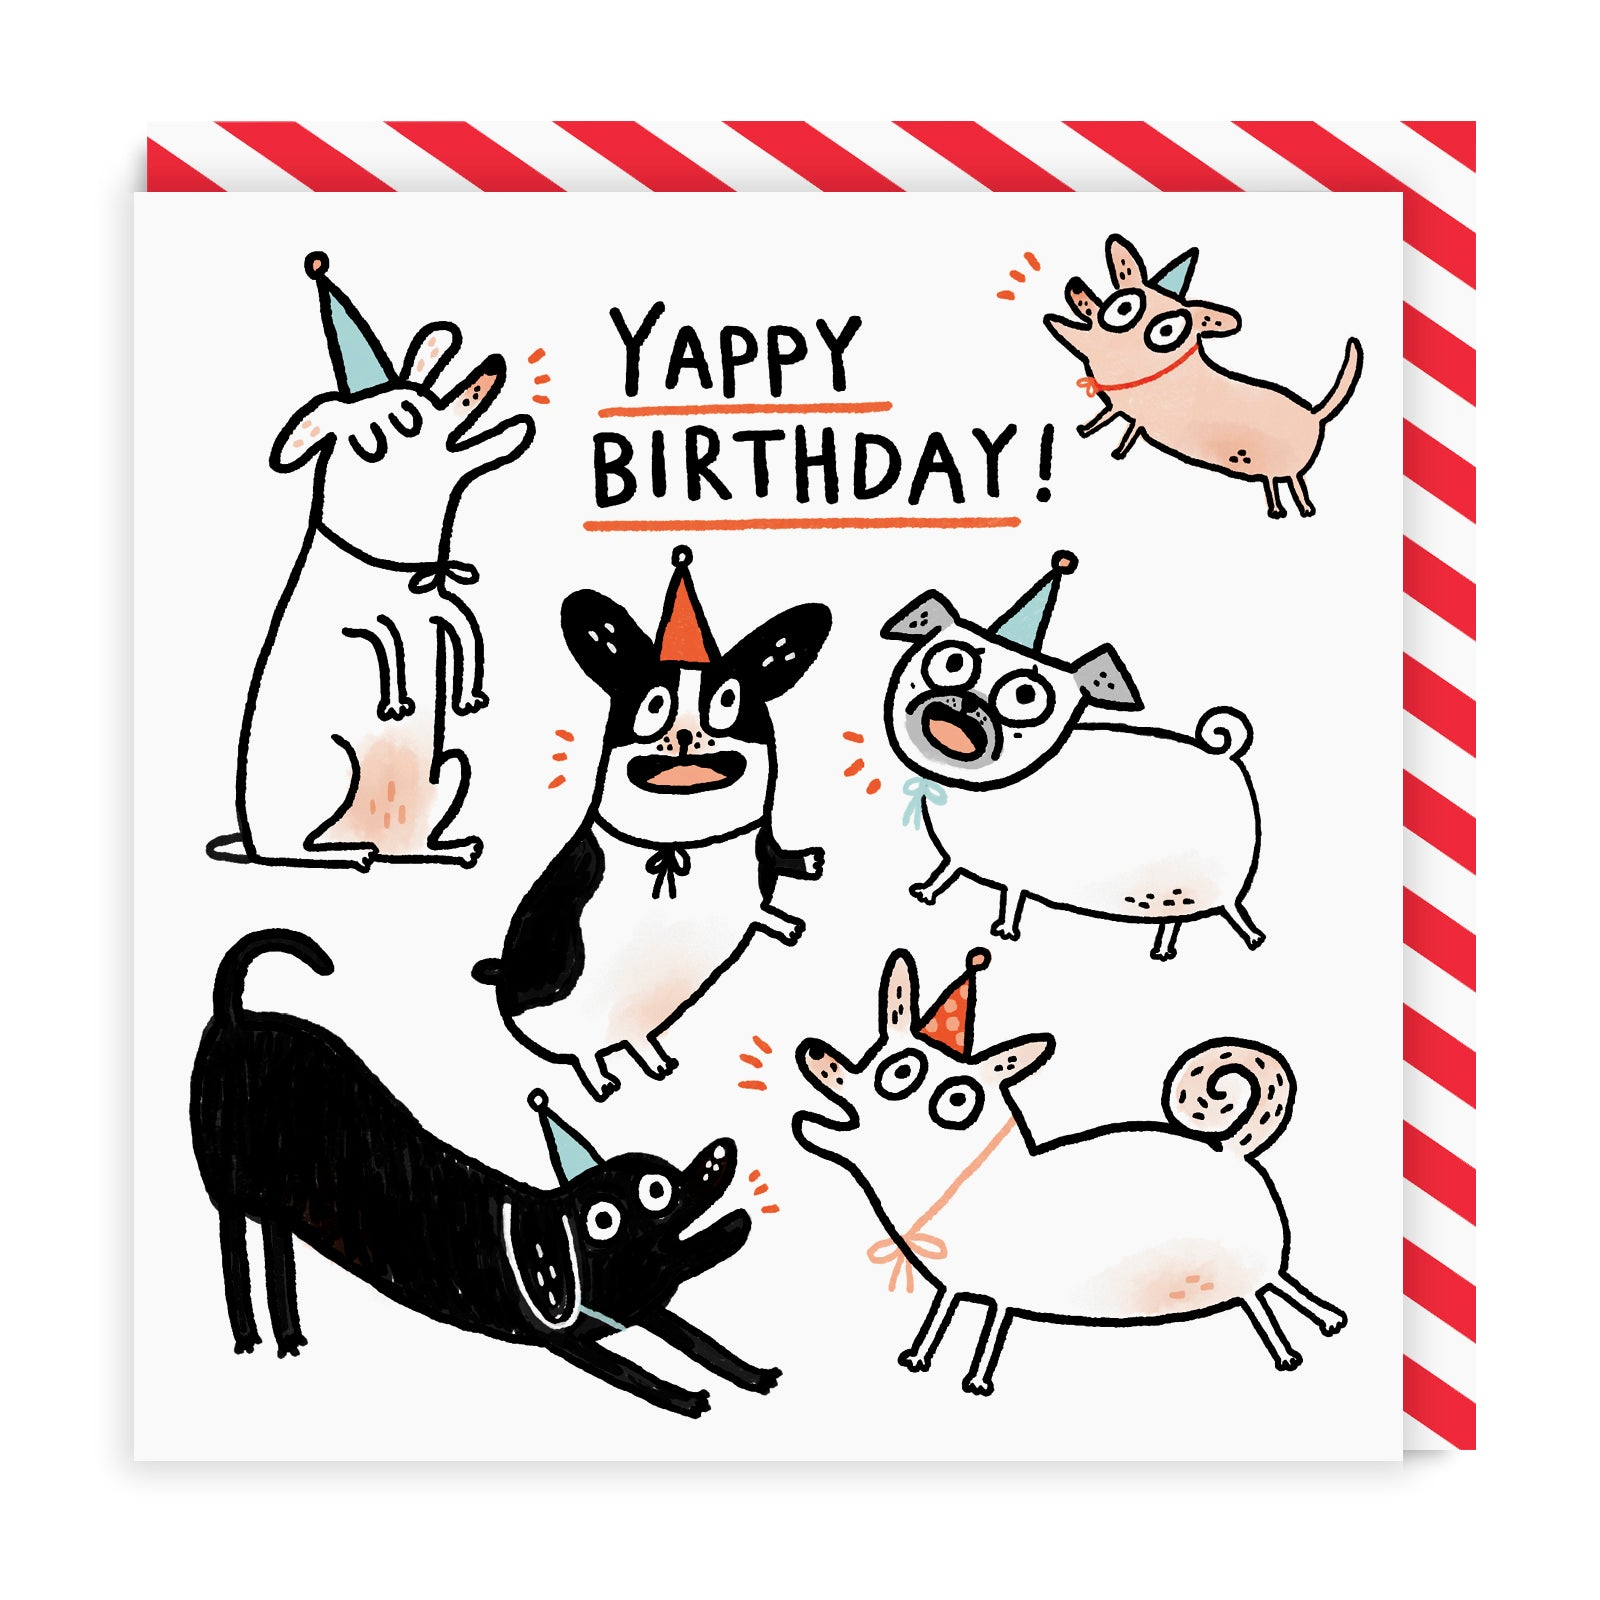 Yappy Birthday Greeting Card